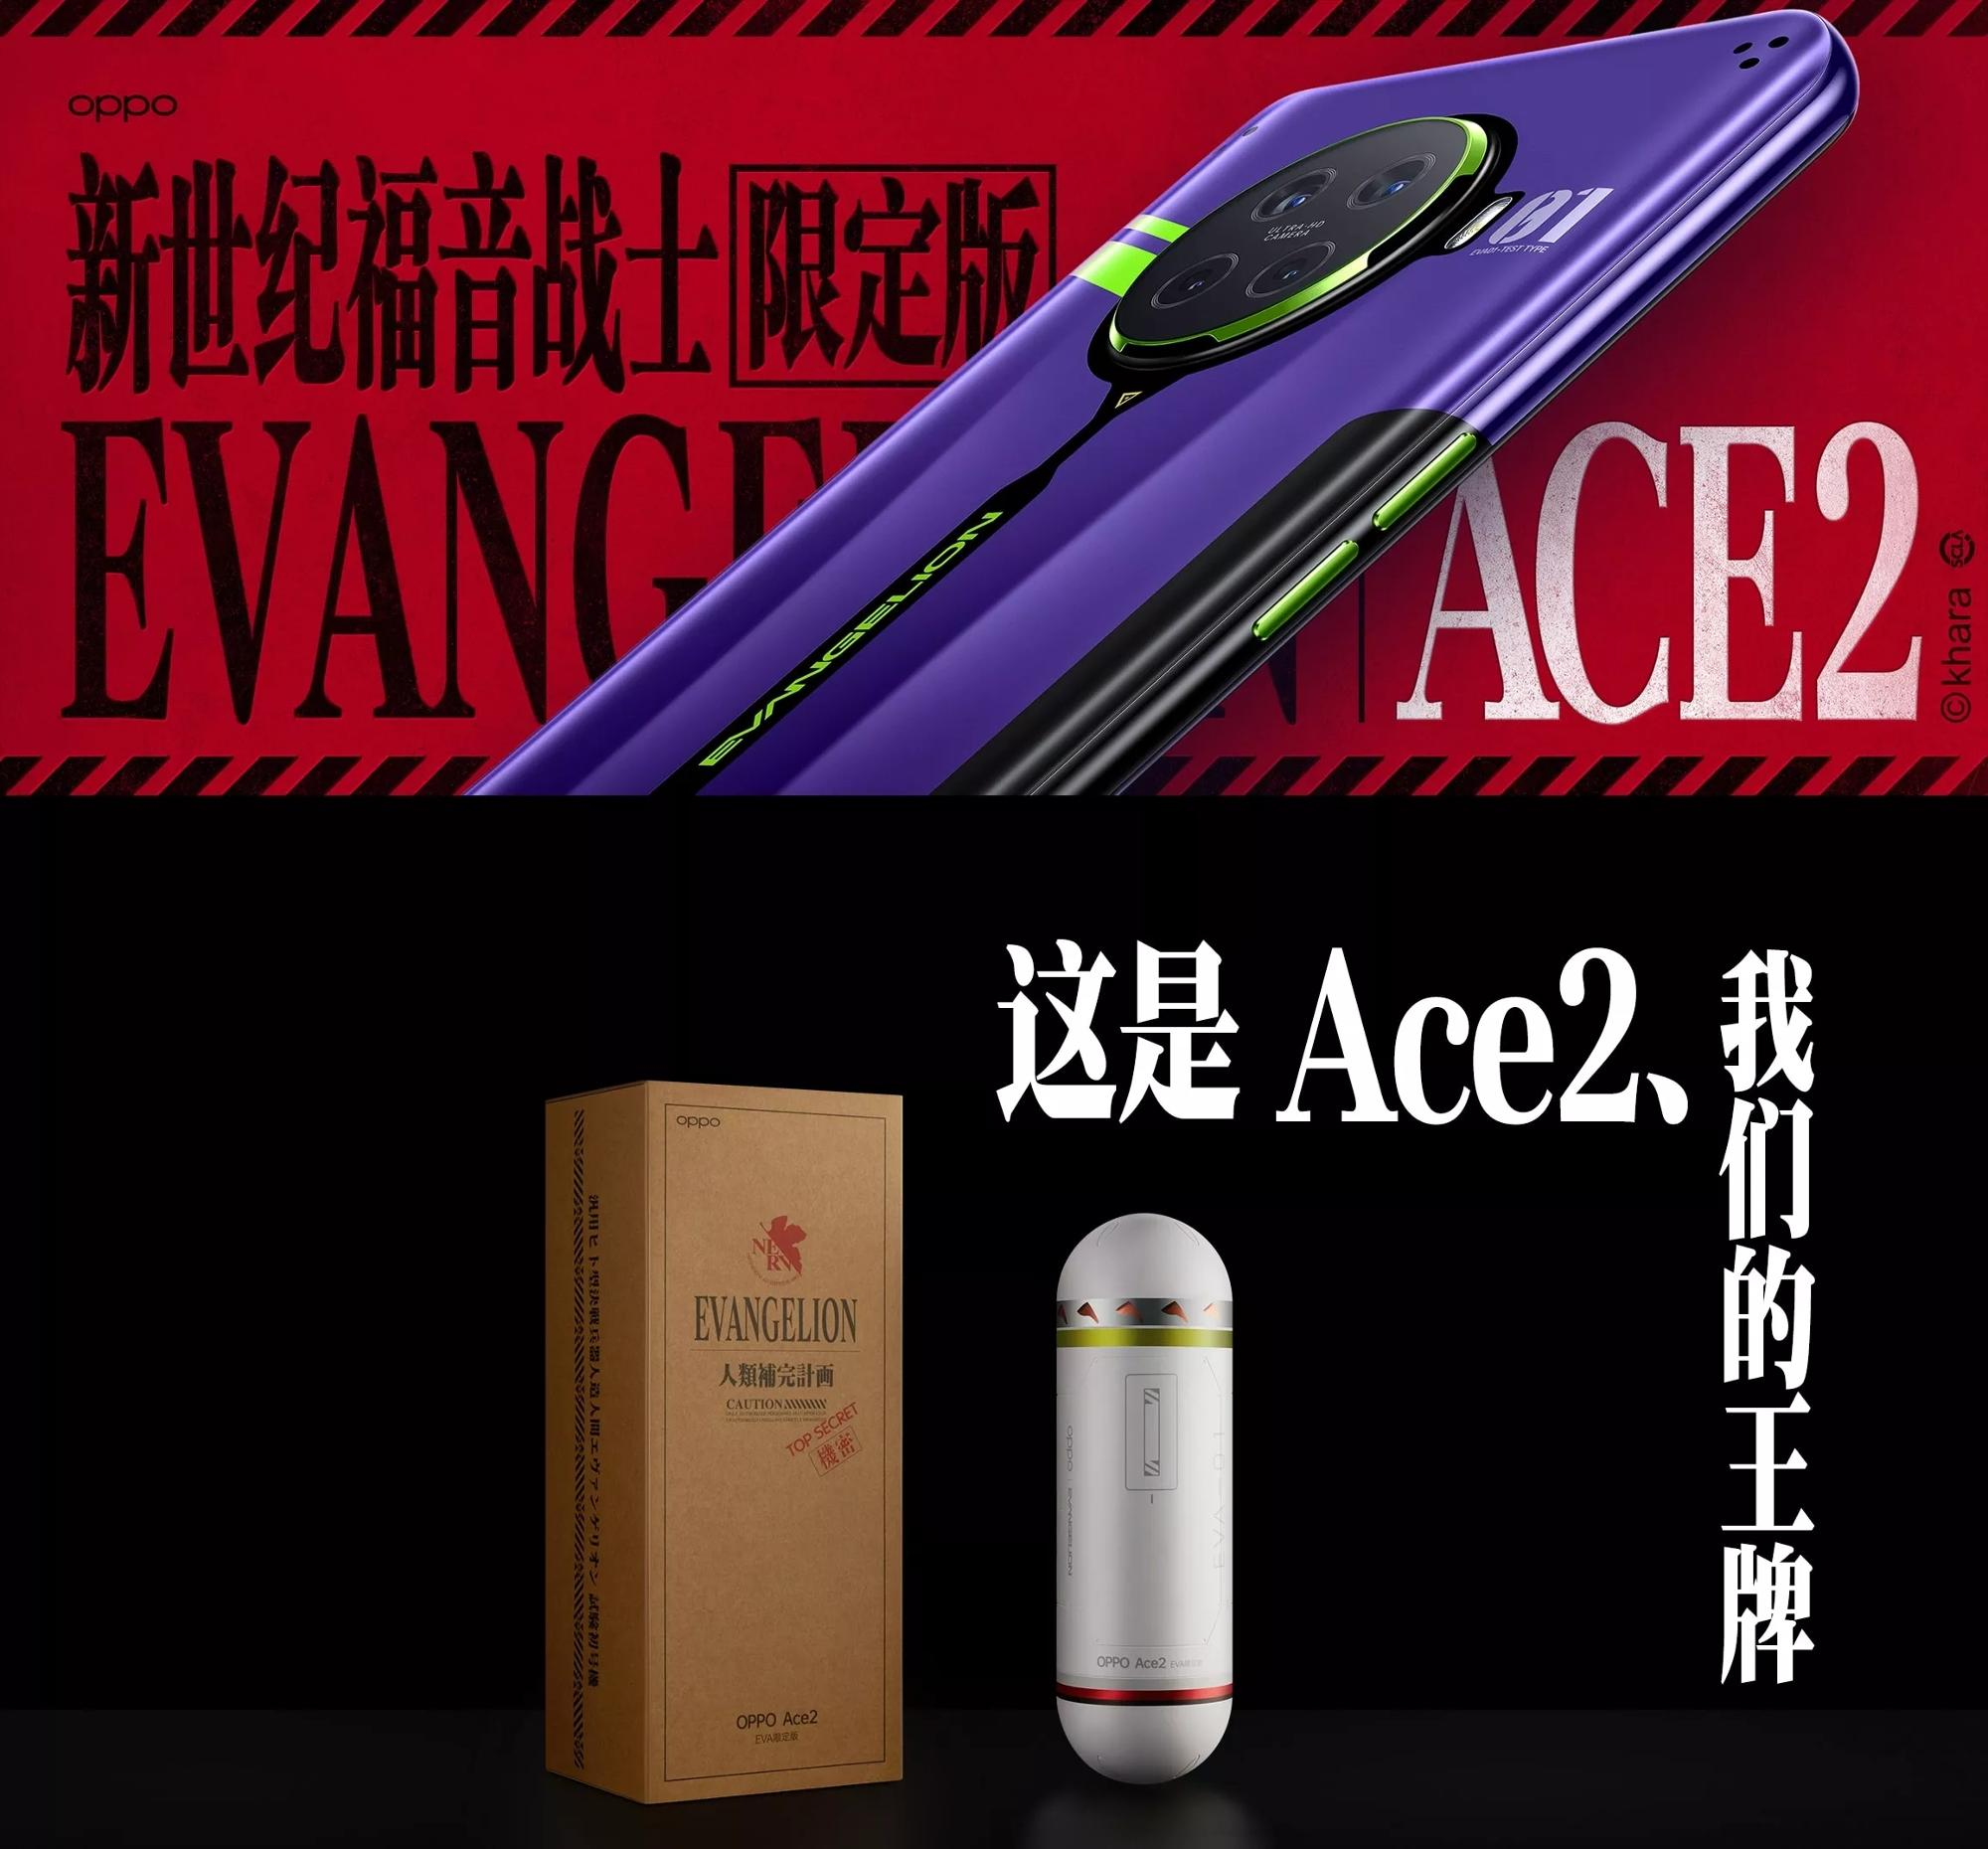 Oppo-ace-2-EVA-Limited-Edition-Main-Banner-Alezay